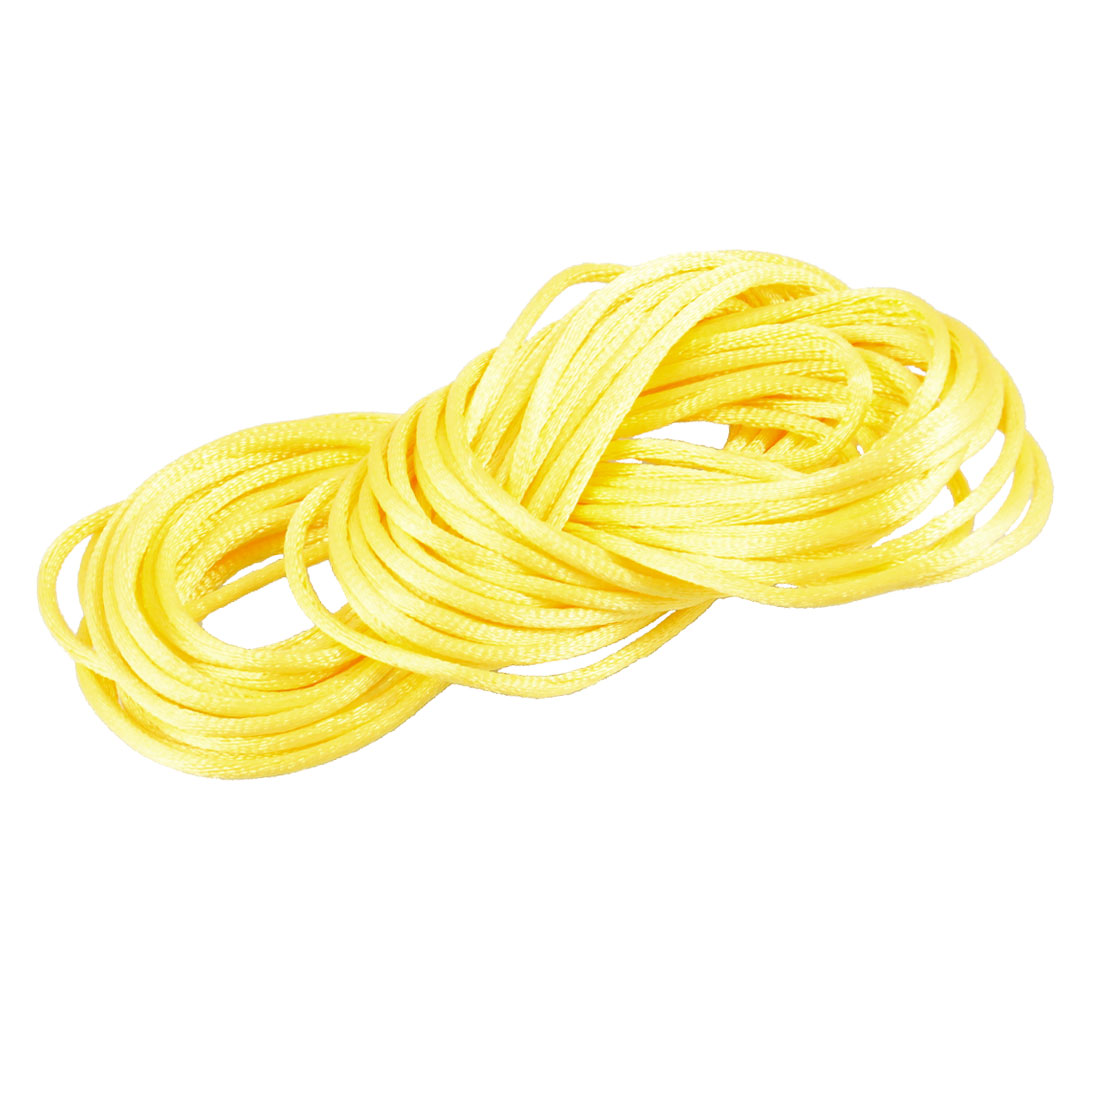 Yellow Braided Thread Nylon Handwork Chinese Knot Rat Tail Cord 8.2M